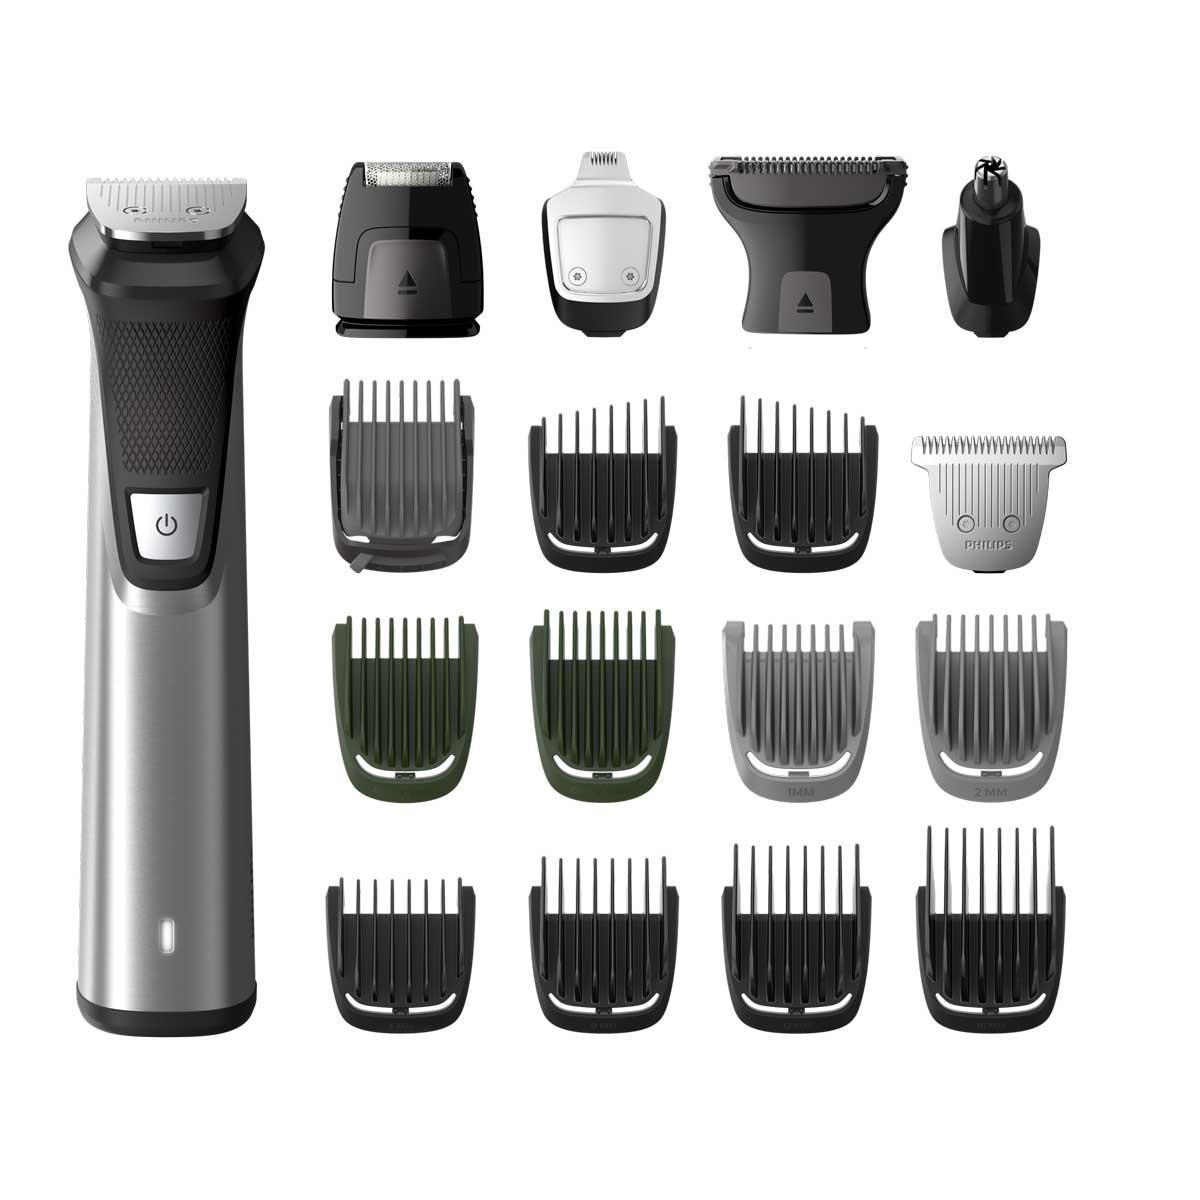 accessori pHilips Multigrom per come rifinire la barba